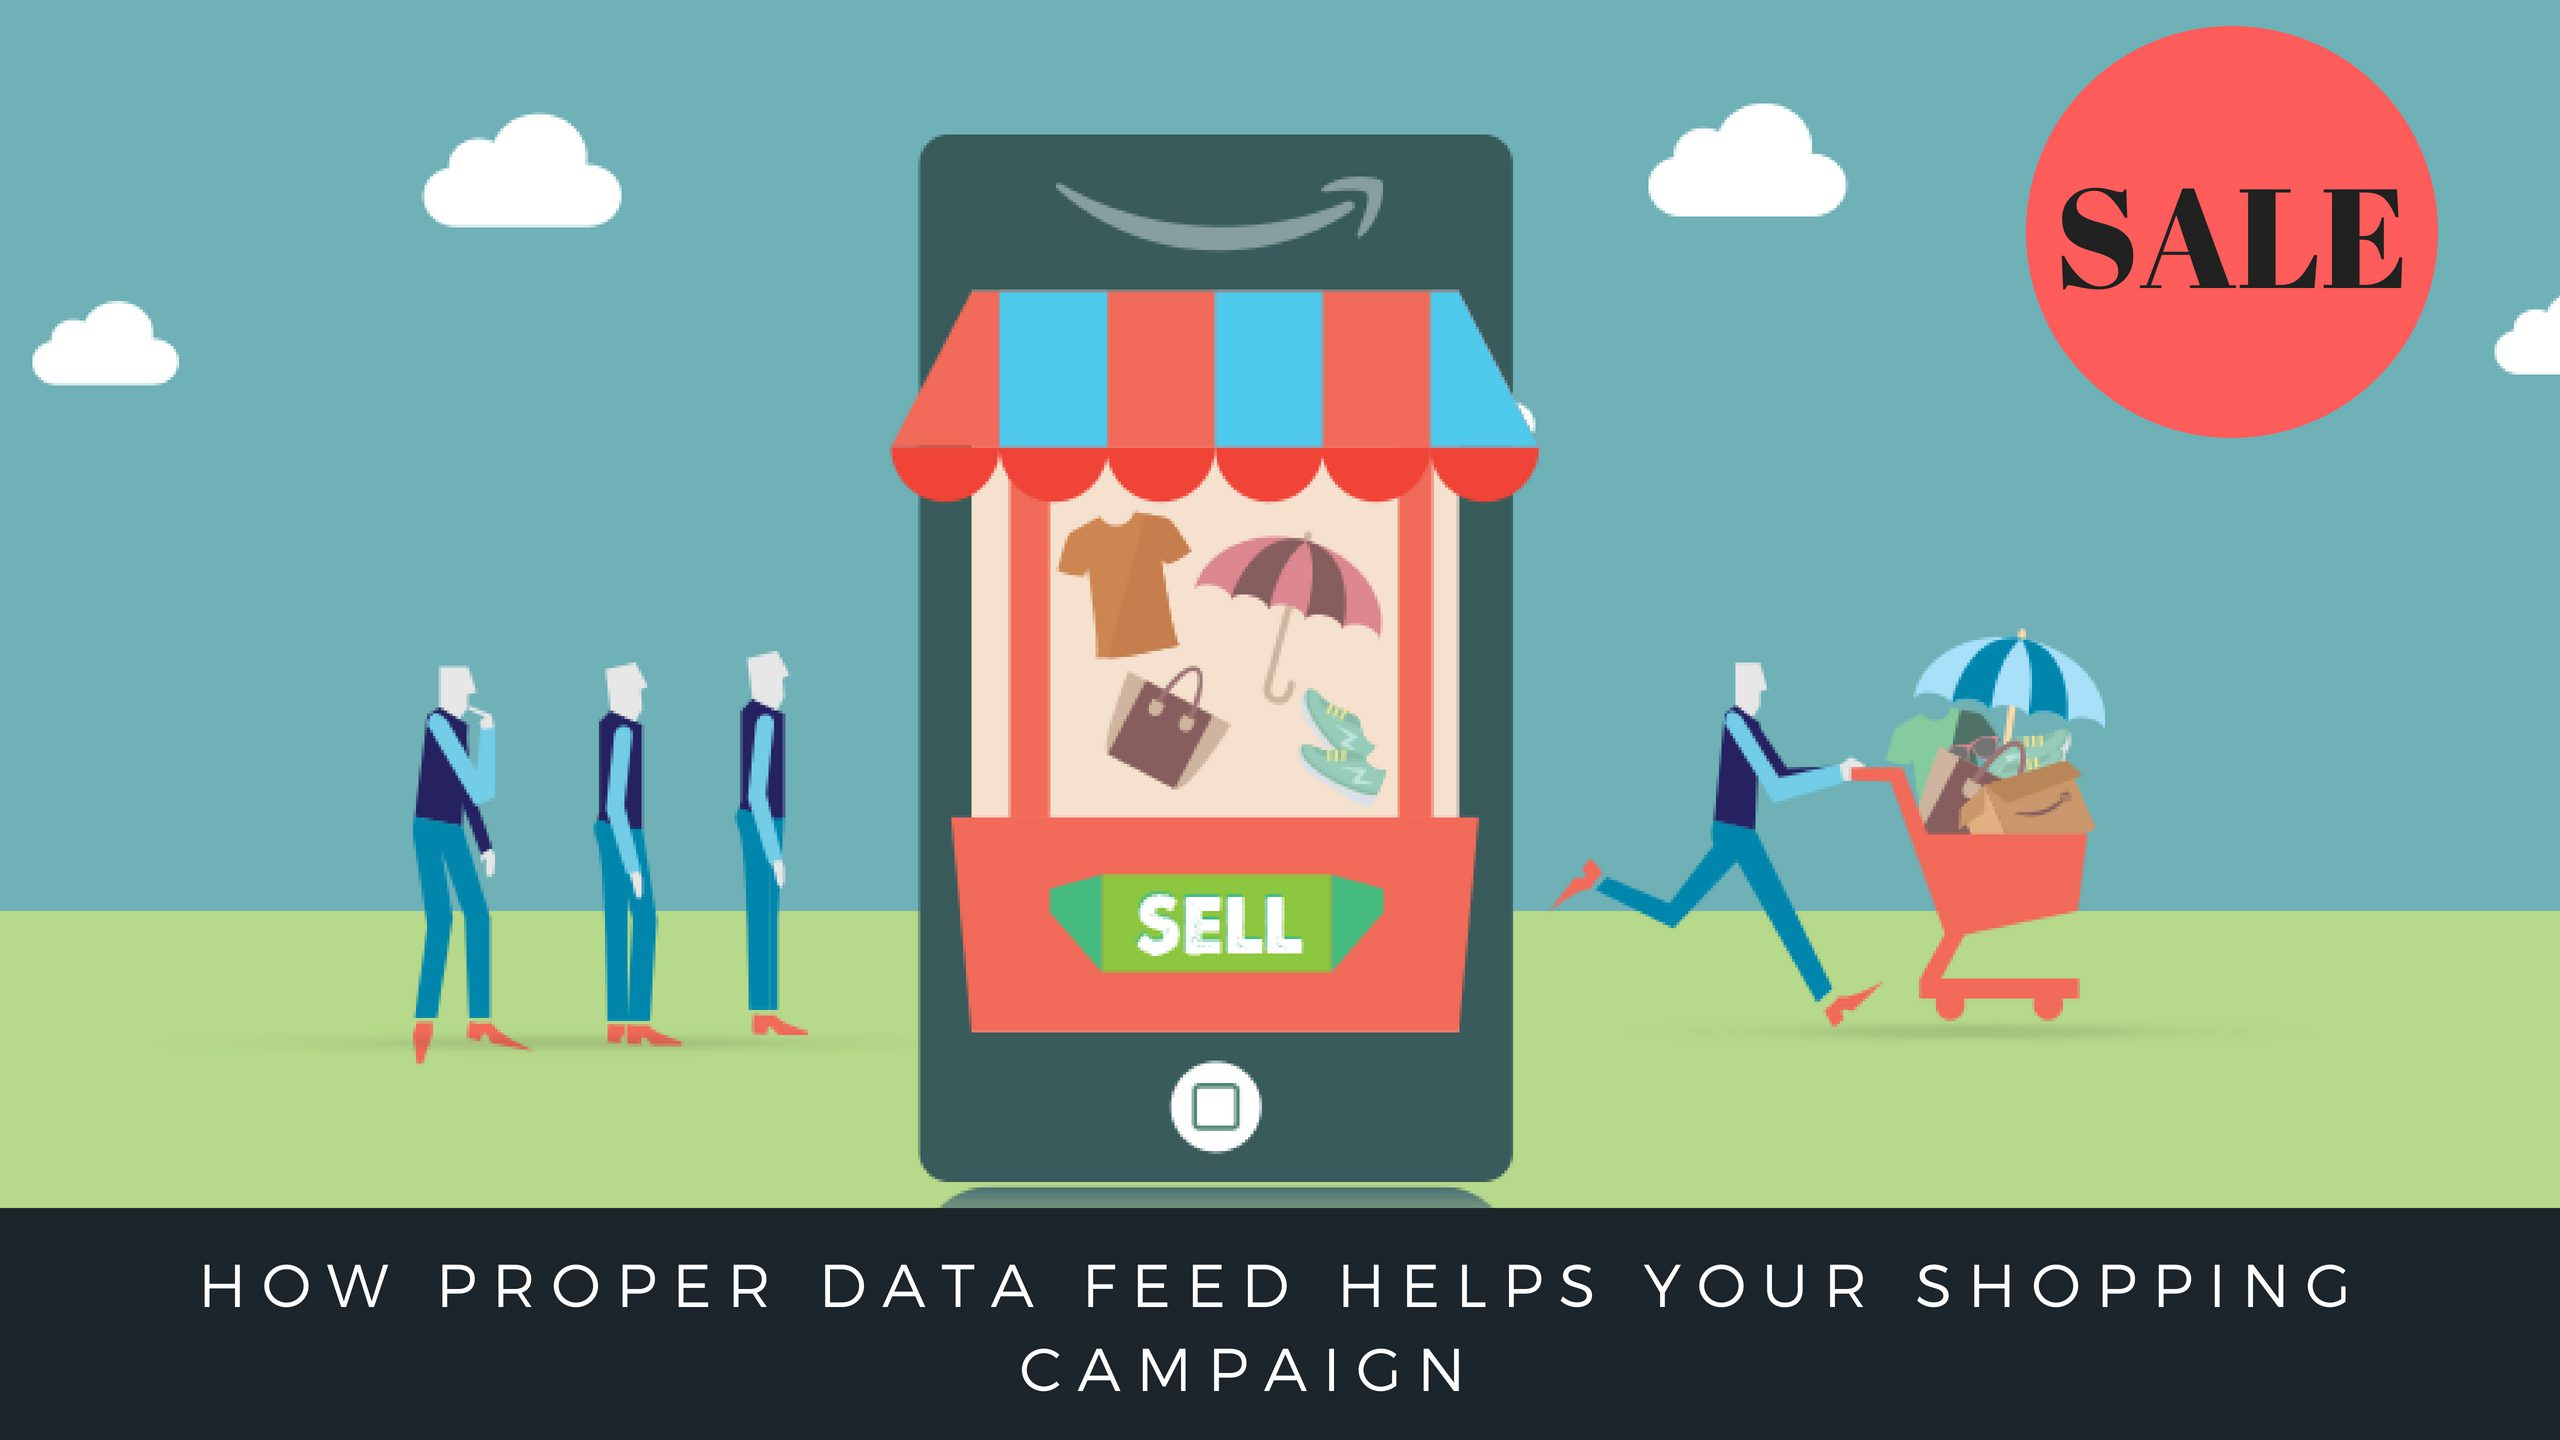 How Proper Data Feed Helps Your Shopping Campaign